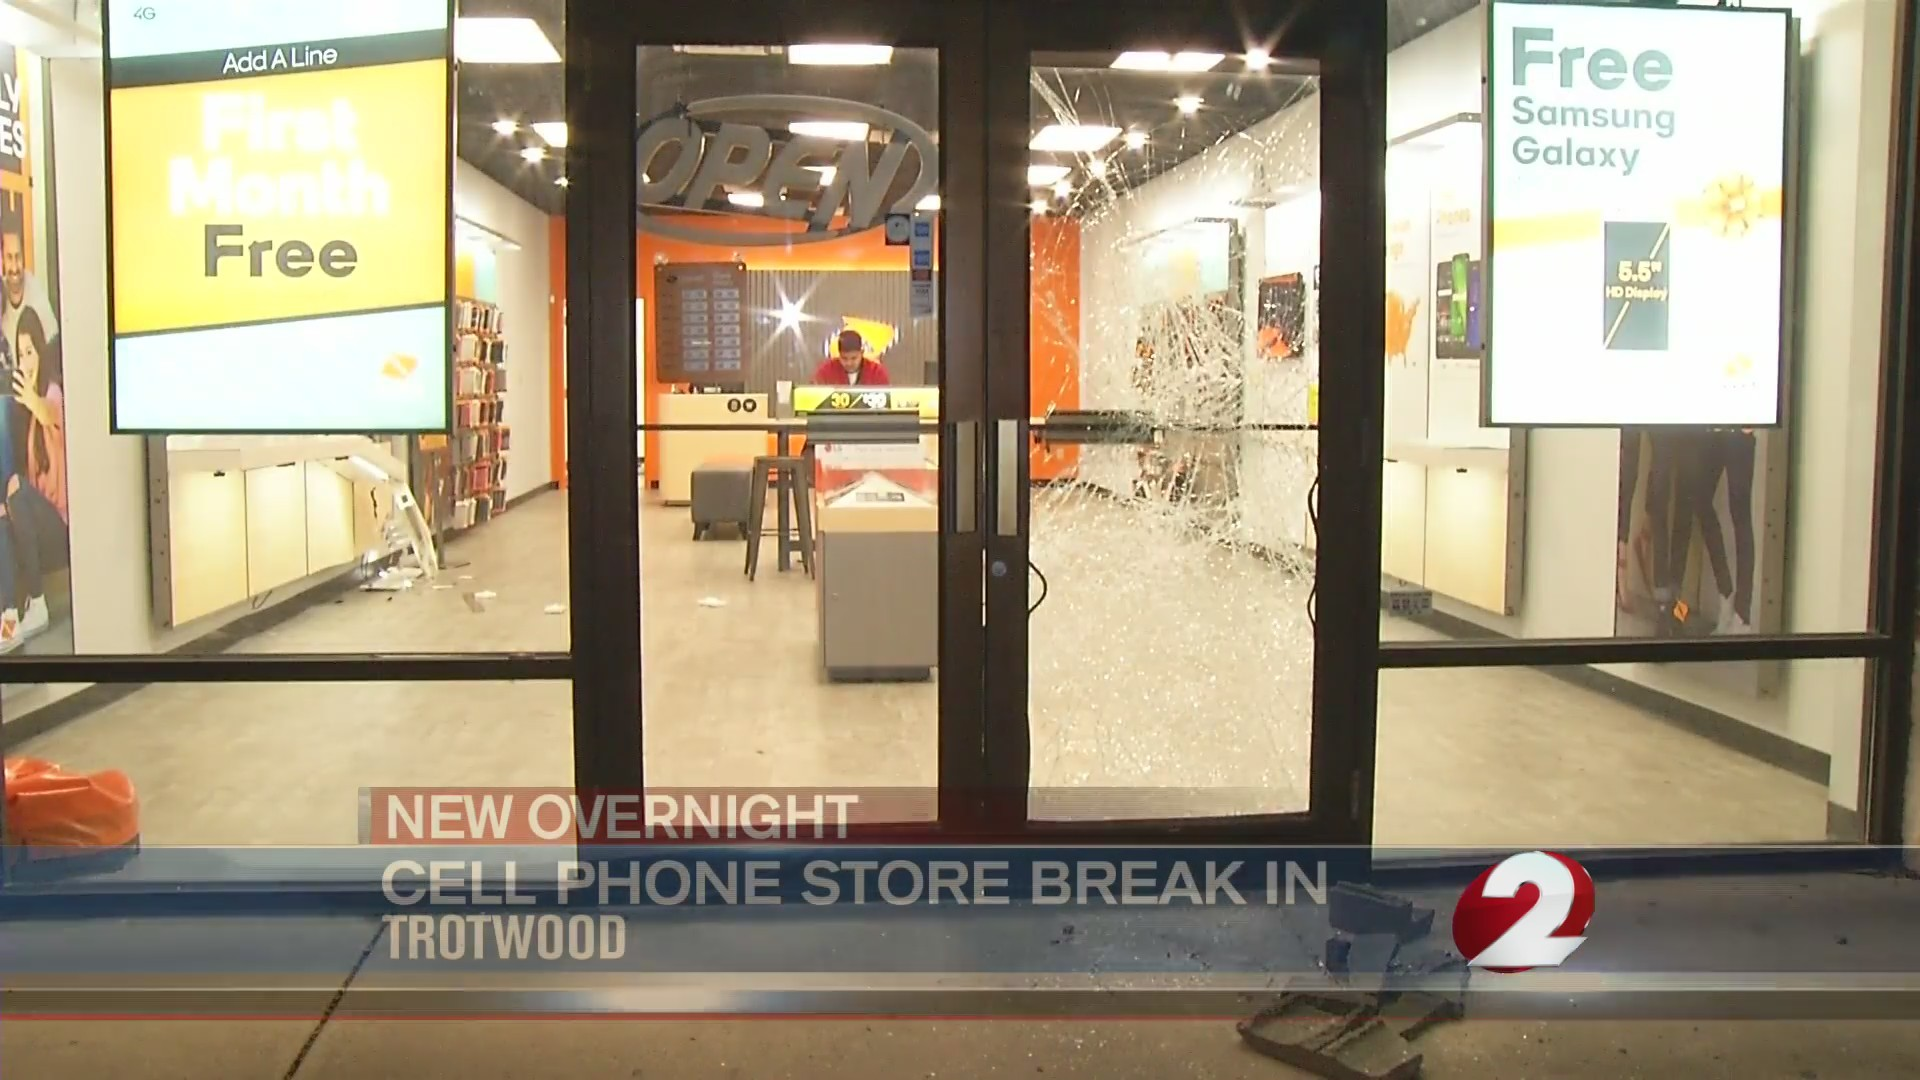 Thieves break into Trotwood cell phone store